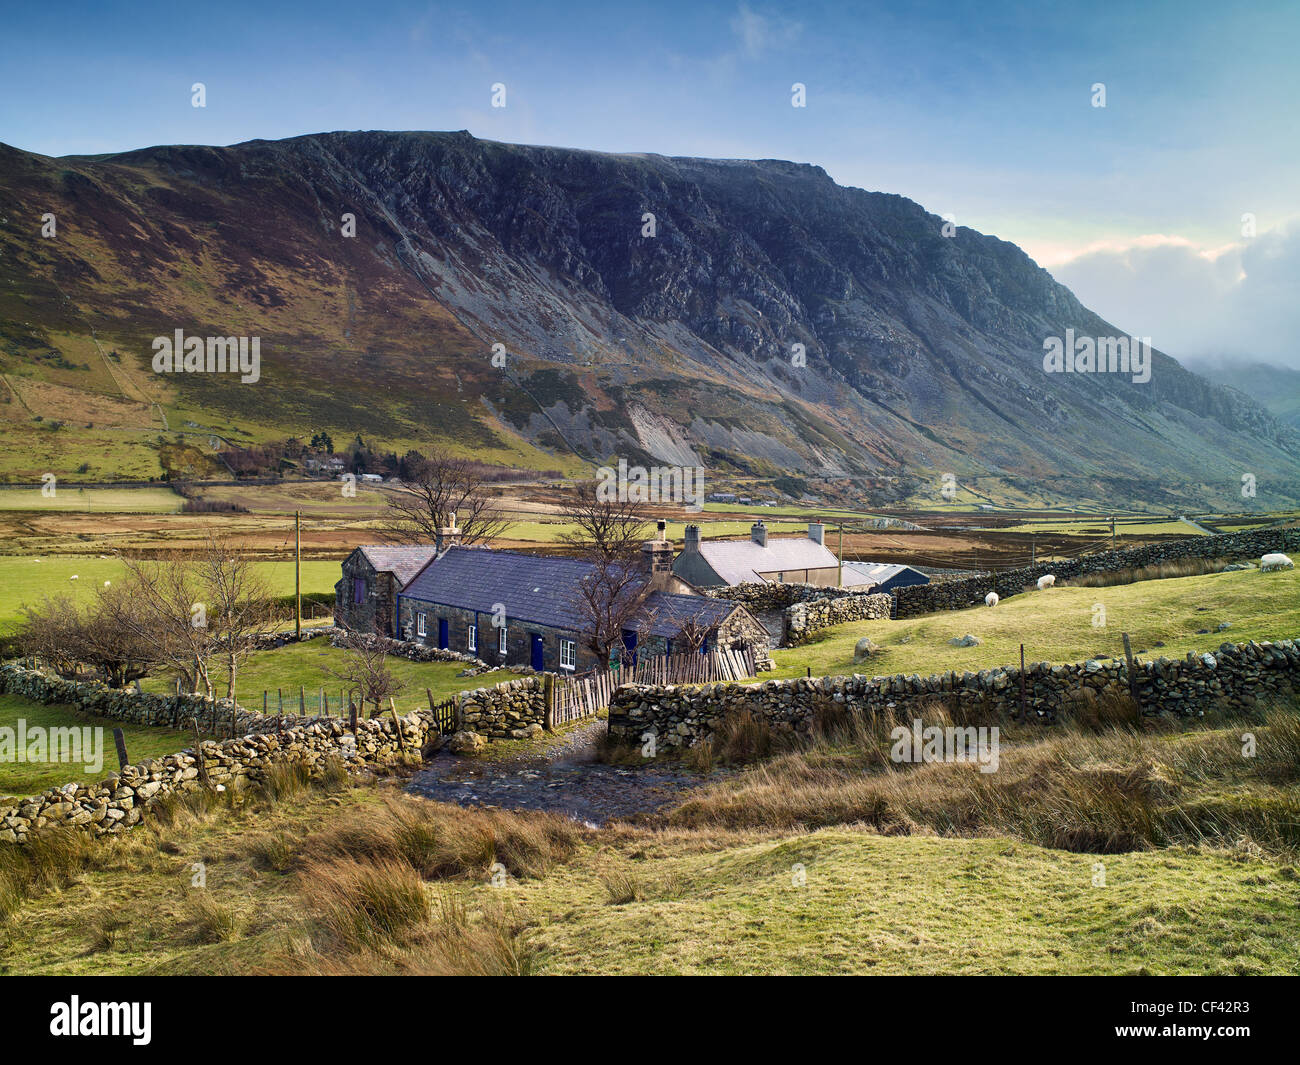 A remote farmhouse in the valley of Nant Francon in the heart of Snowdonia. - Stock Image